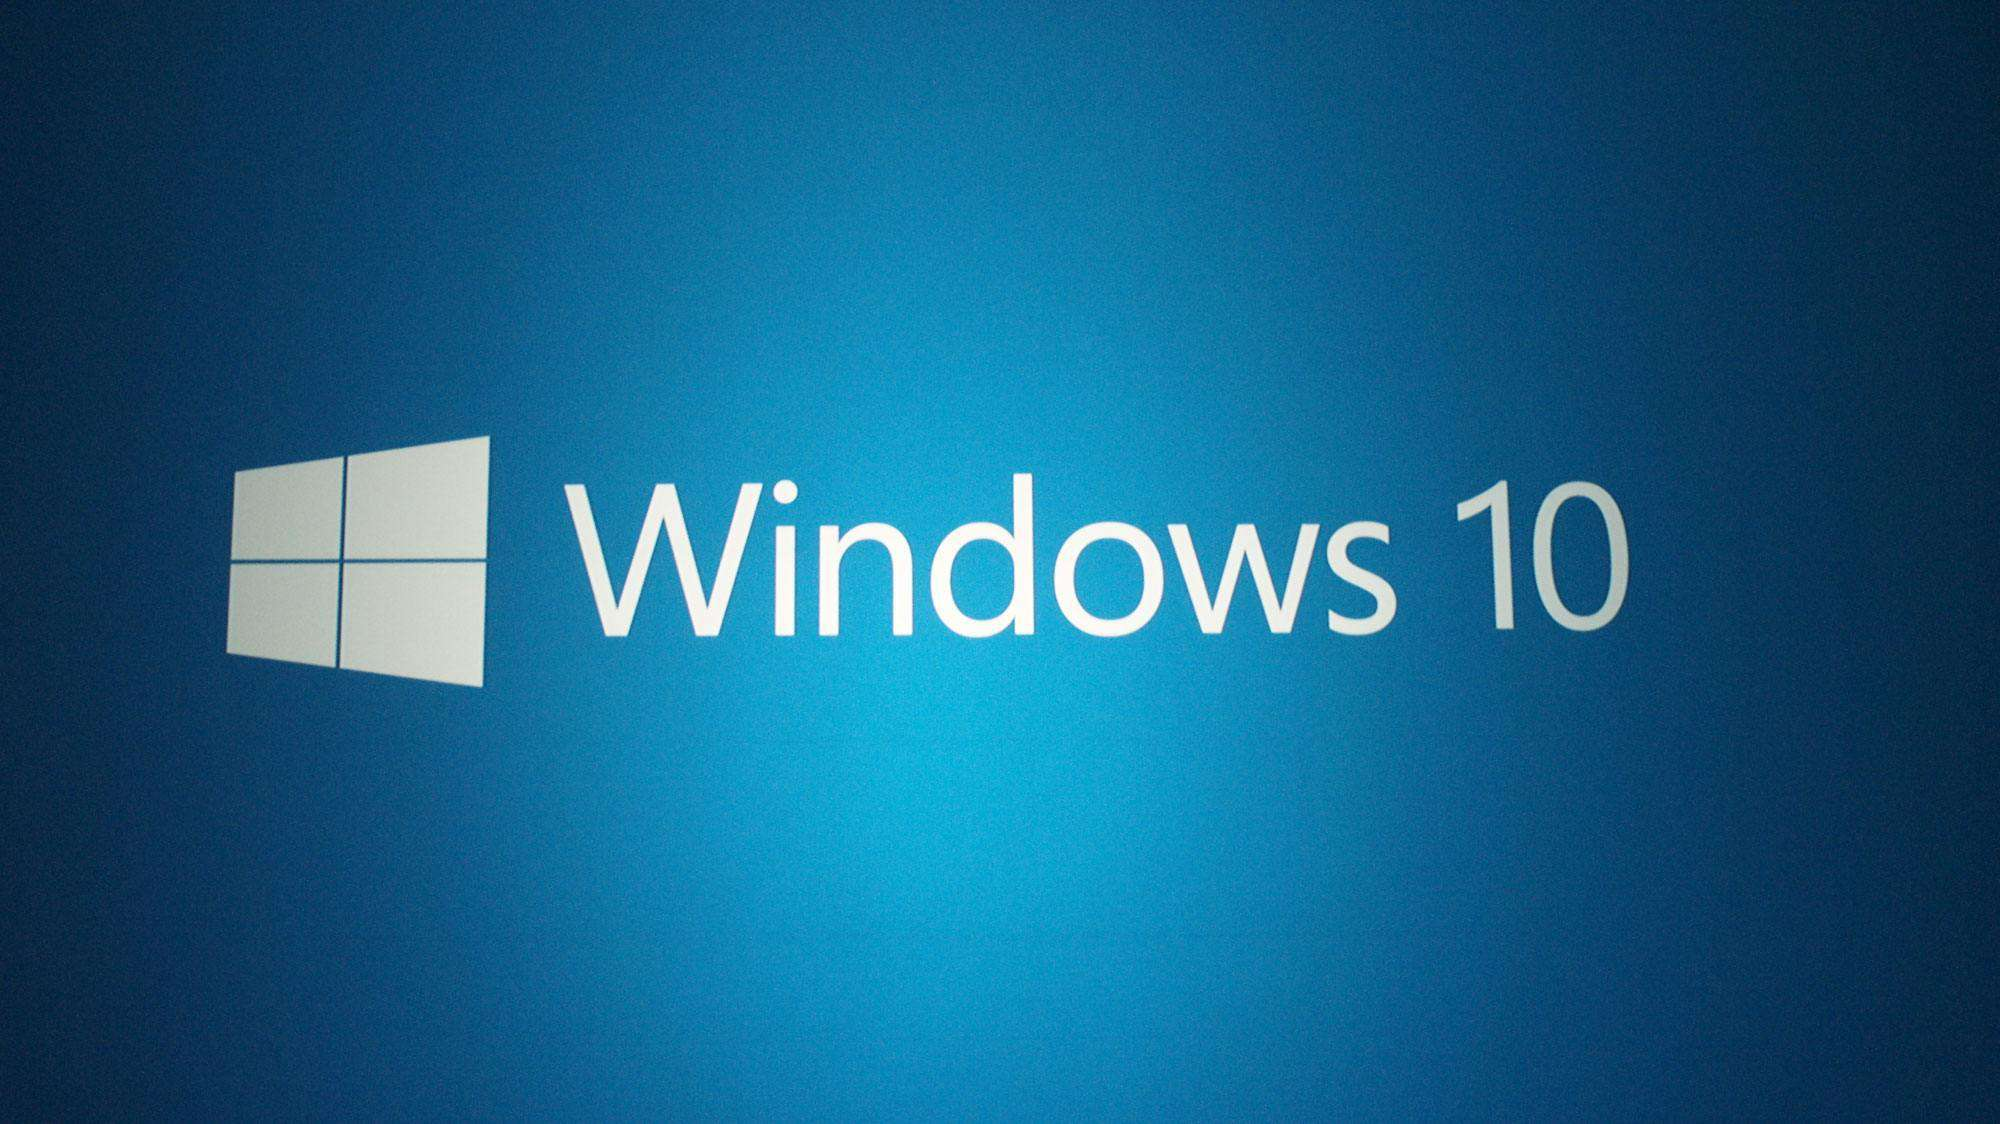 La build 14295 de Windows 10 debuta para PCs y móviles en el anillo rápido